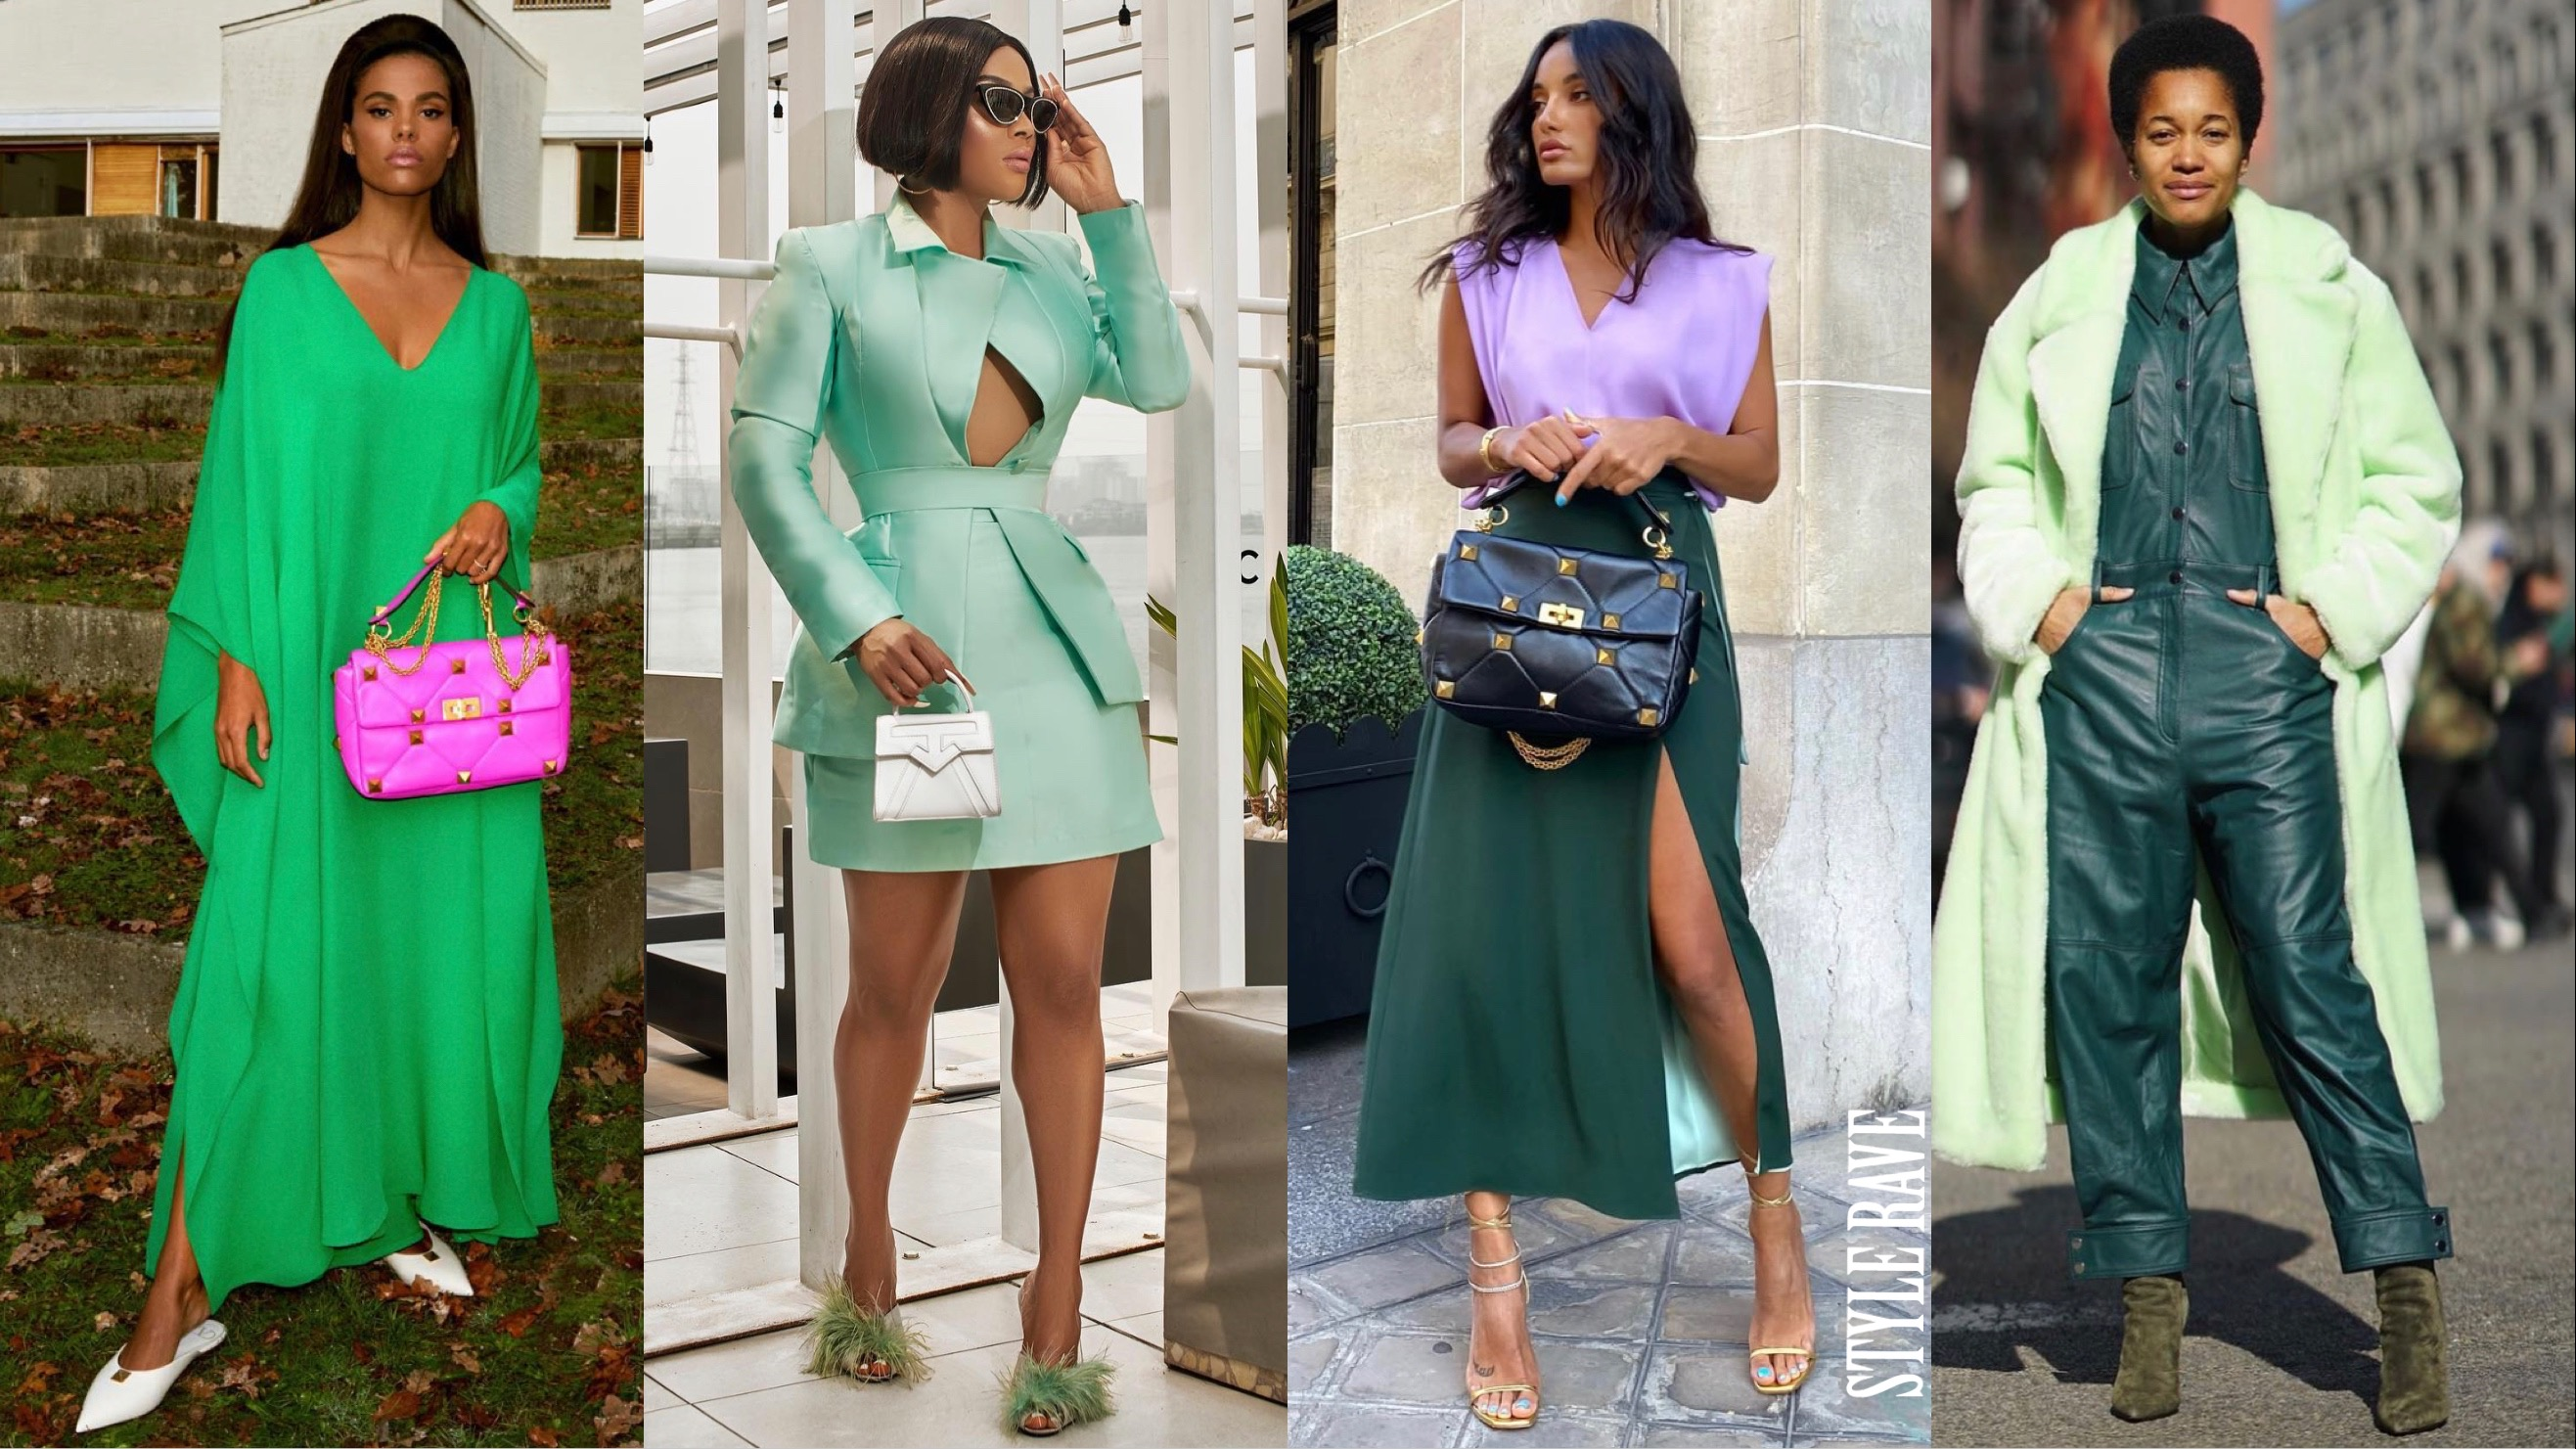 four-women-showing-how-to-wear-green-outfits-and-style-clothes